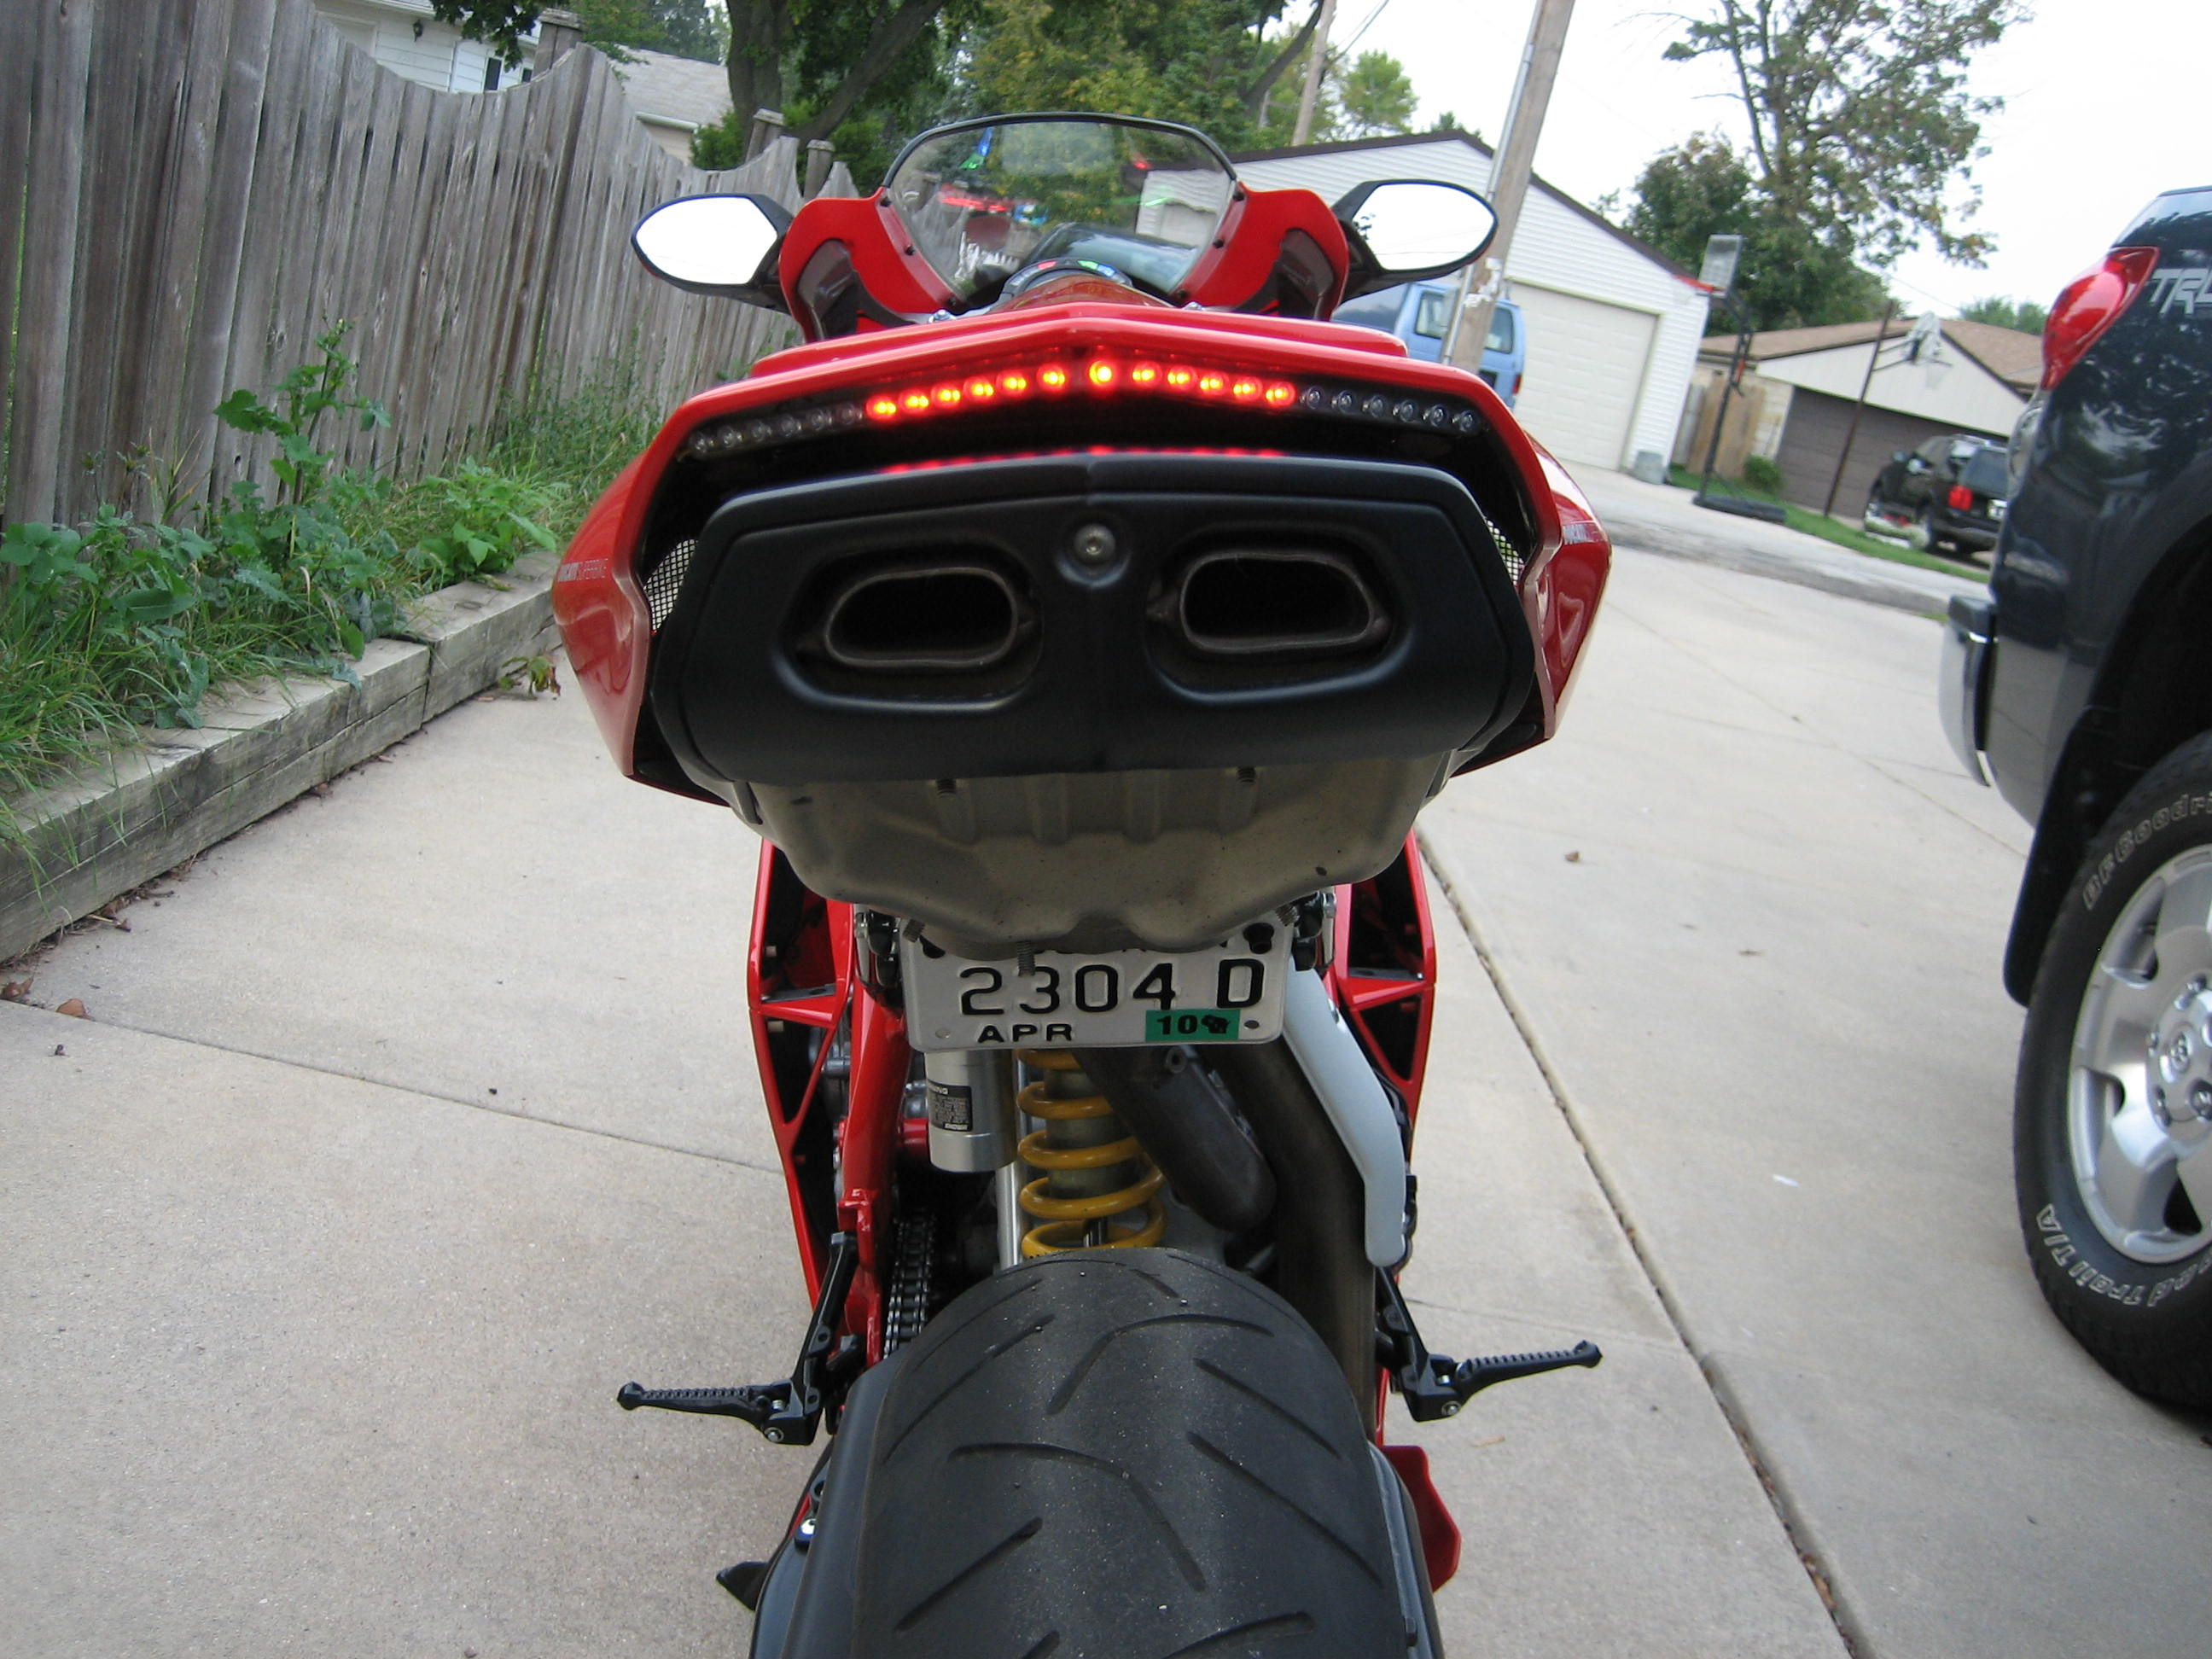 D Custom Led Tail Light License Plate Bracket Installed Today Img on Old Wiring Colors